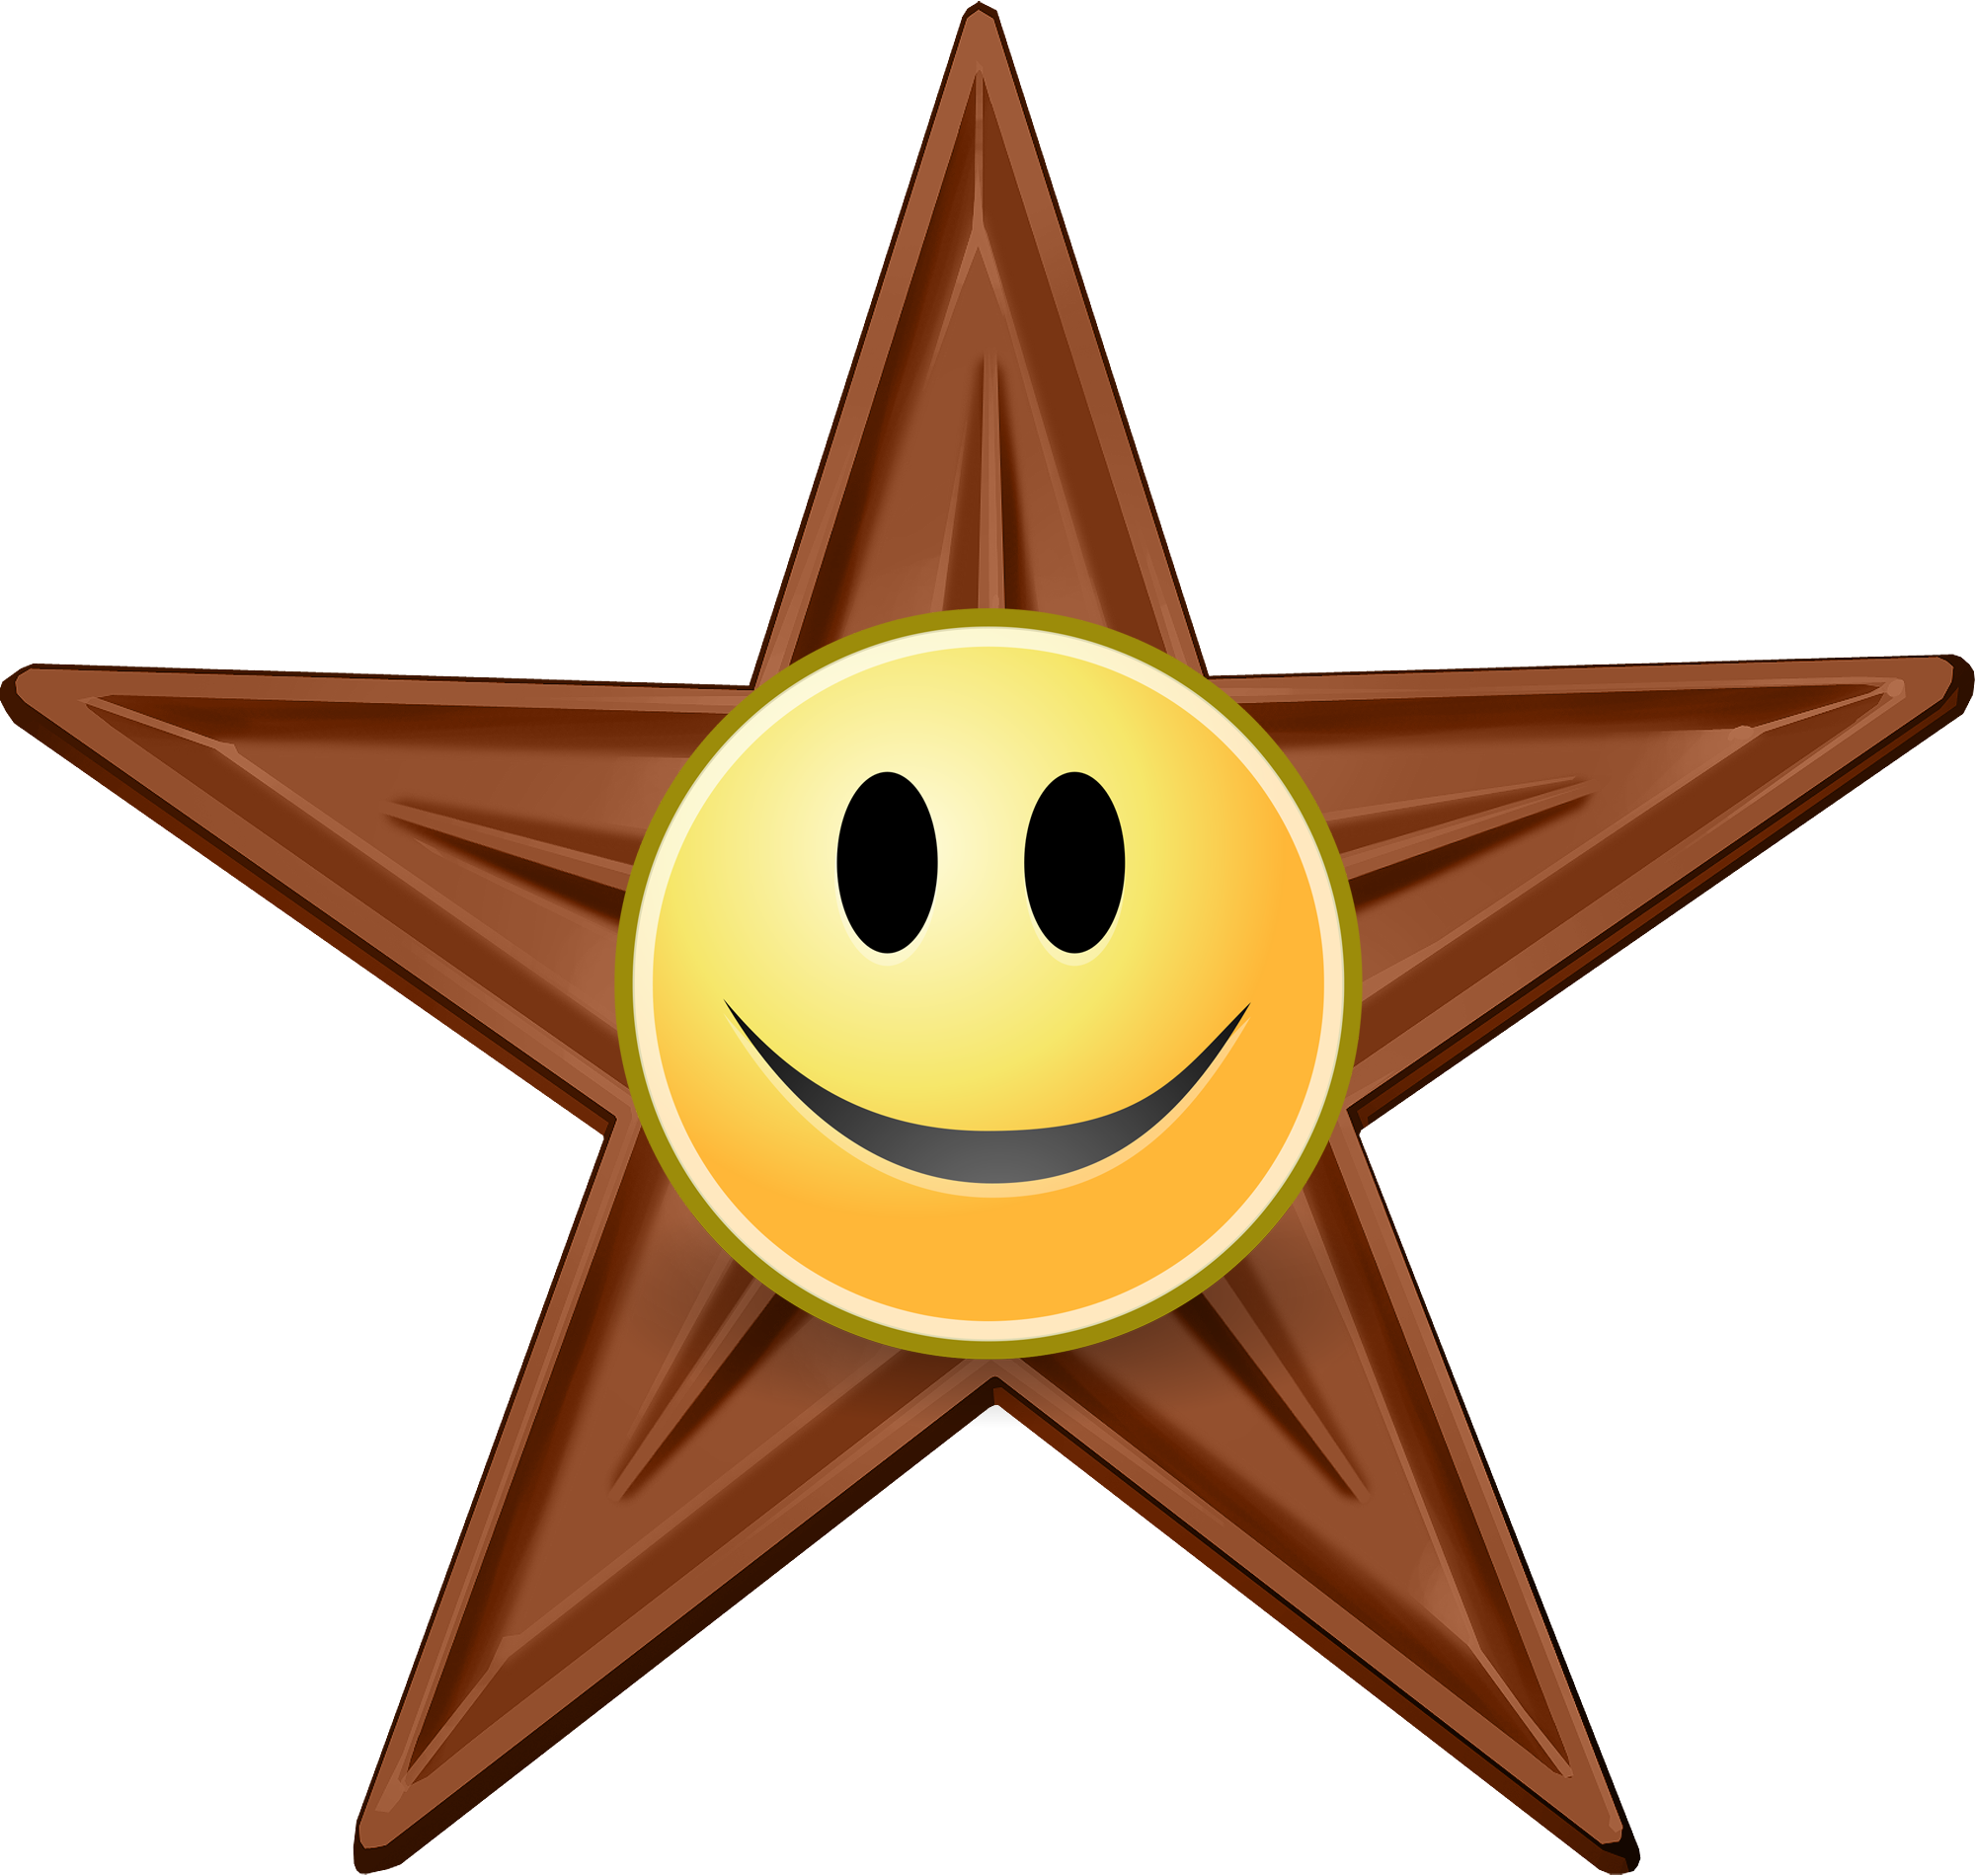 Kindness clipart smiling face. File barnstar hires png